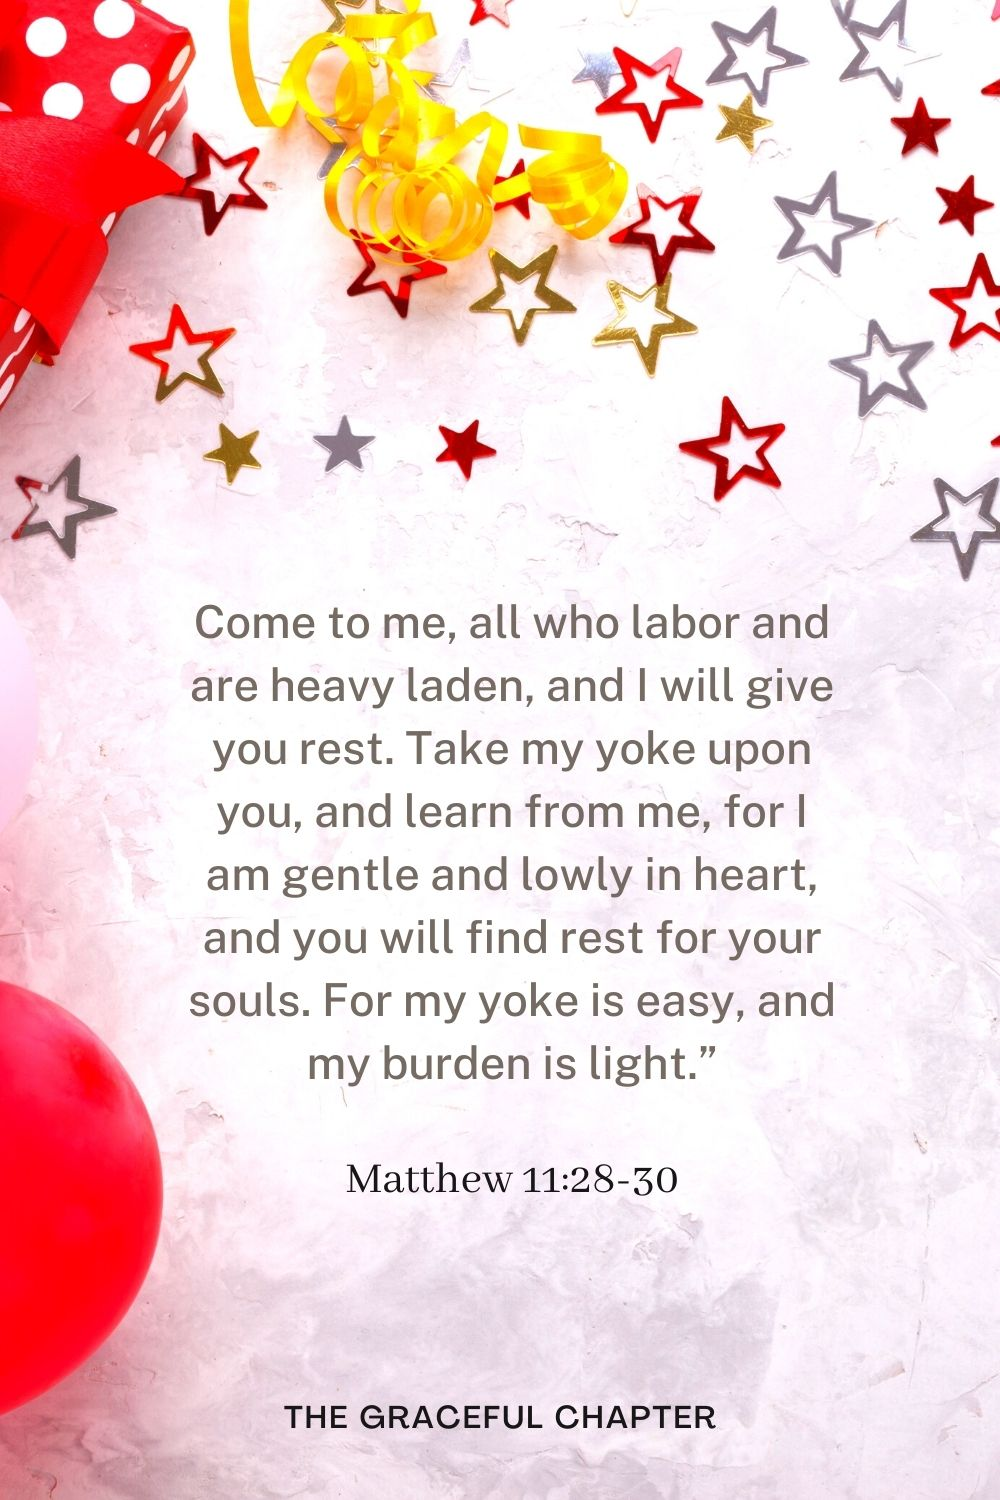 """Come to me, all who labor and are heavy laden, and I will give you rest.Take my yoke upon you, and learn from me, for I am gentle and lowly in heart, and you will find rest for your souls.For my yoke is easy, and my burden is light."""" Matthew 11:28-30"""